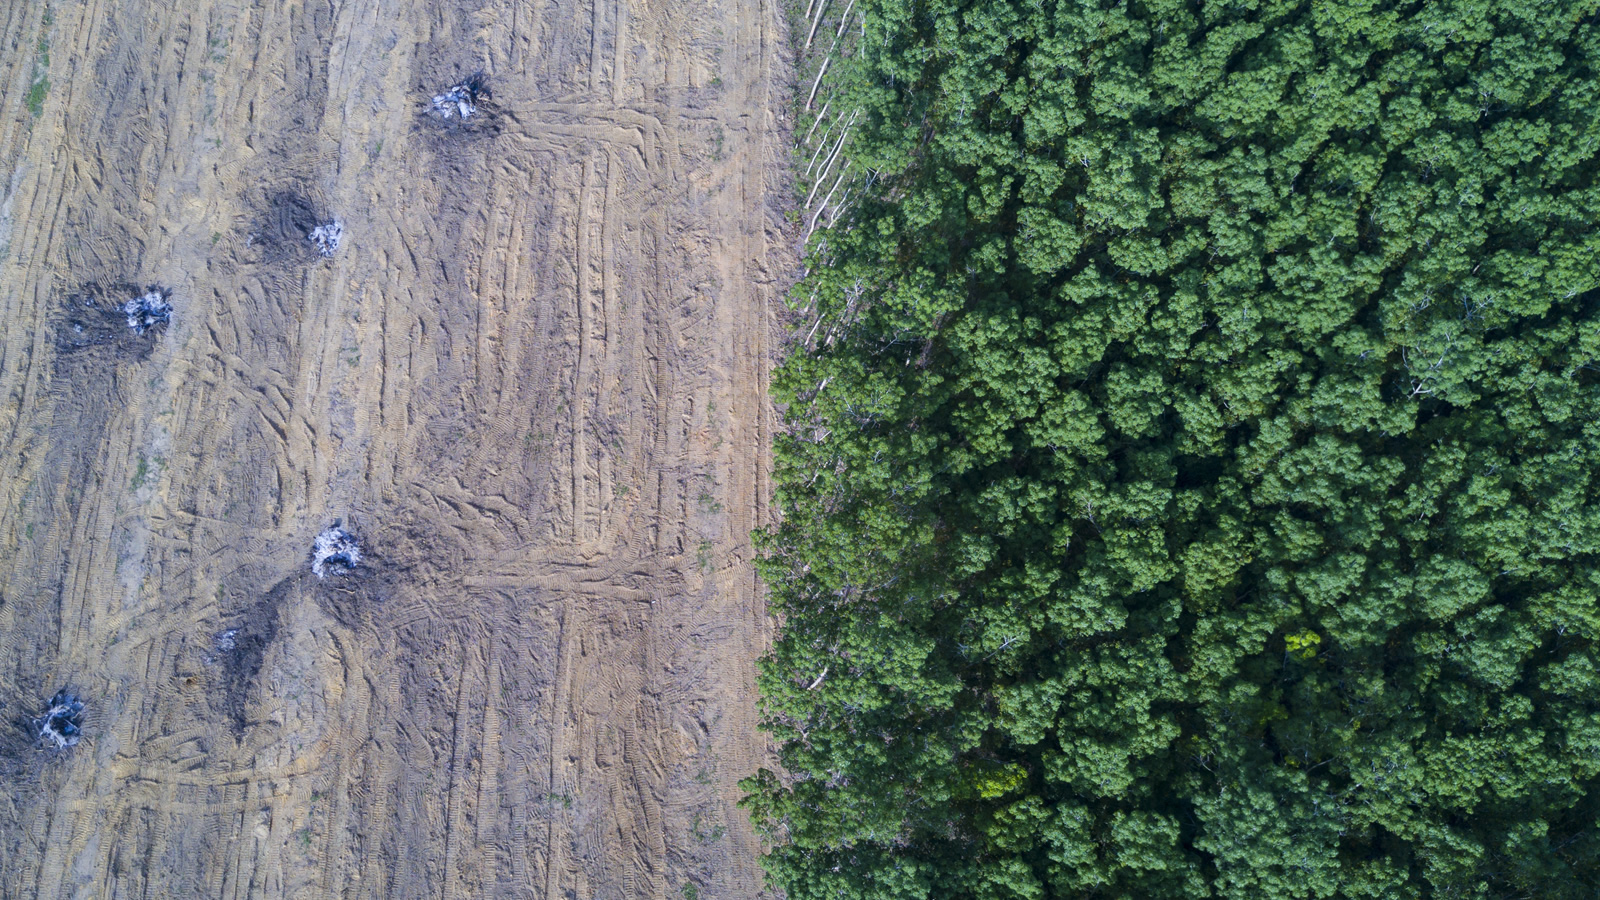 <h4>U.S. COMPANIES CAN LEAD</h4><h5>U.S. agricultural companies such as Cargill should commit to zero deforestation in tropical forests. Tissue brands such as Bounty and Charmin should include post-consumer recycled paper in their products, or choose alternative fibers such as wheat straw.</h5><em>Rich Carey via Shutterstock</em>